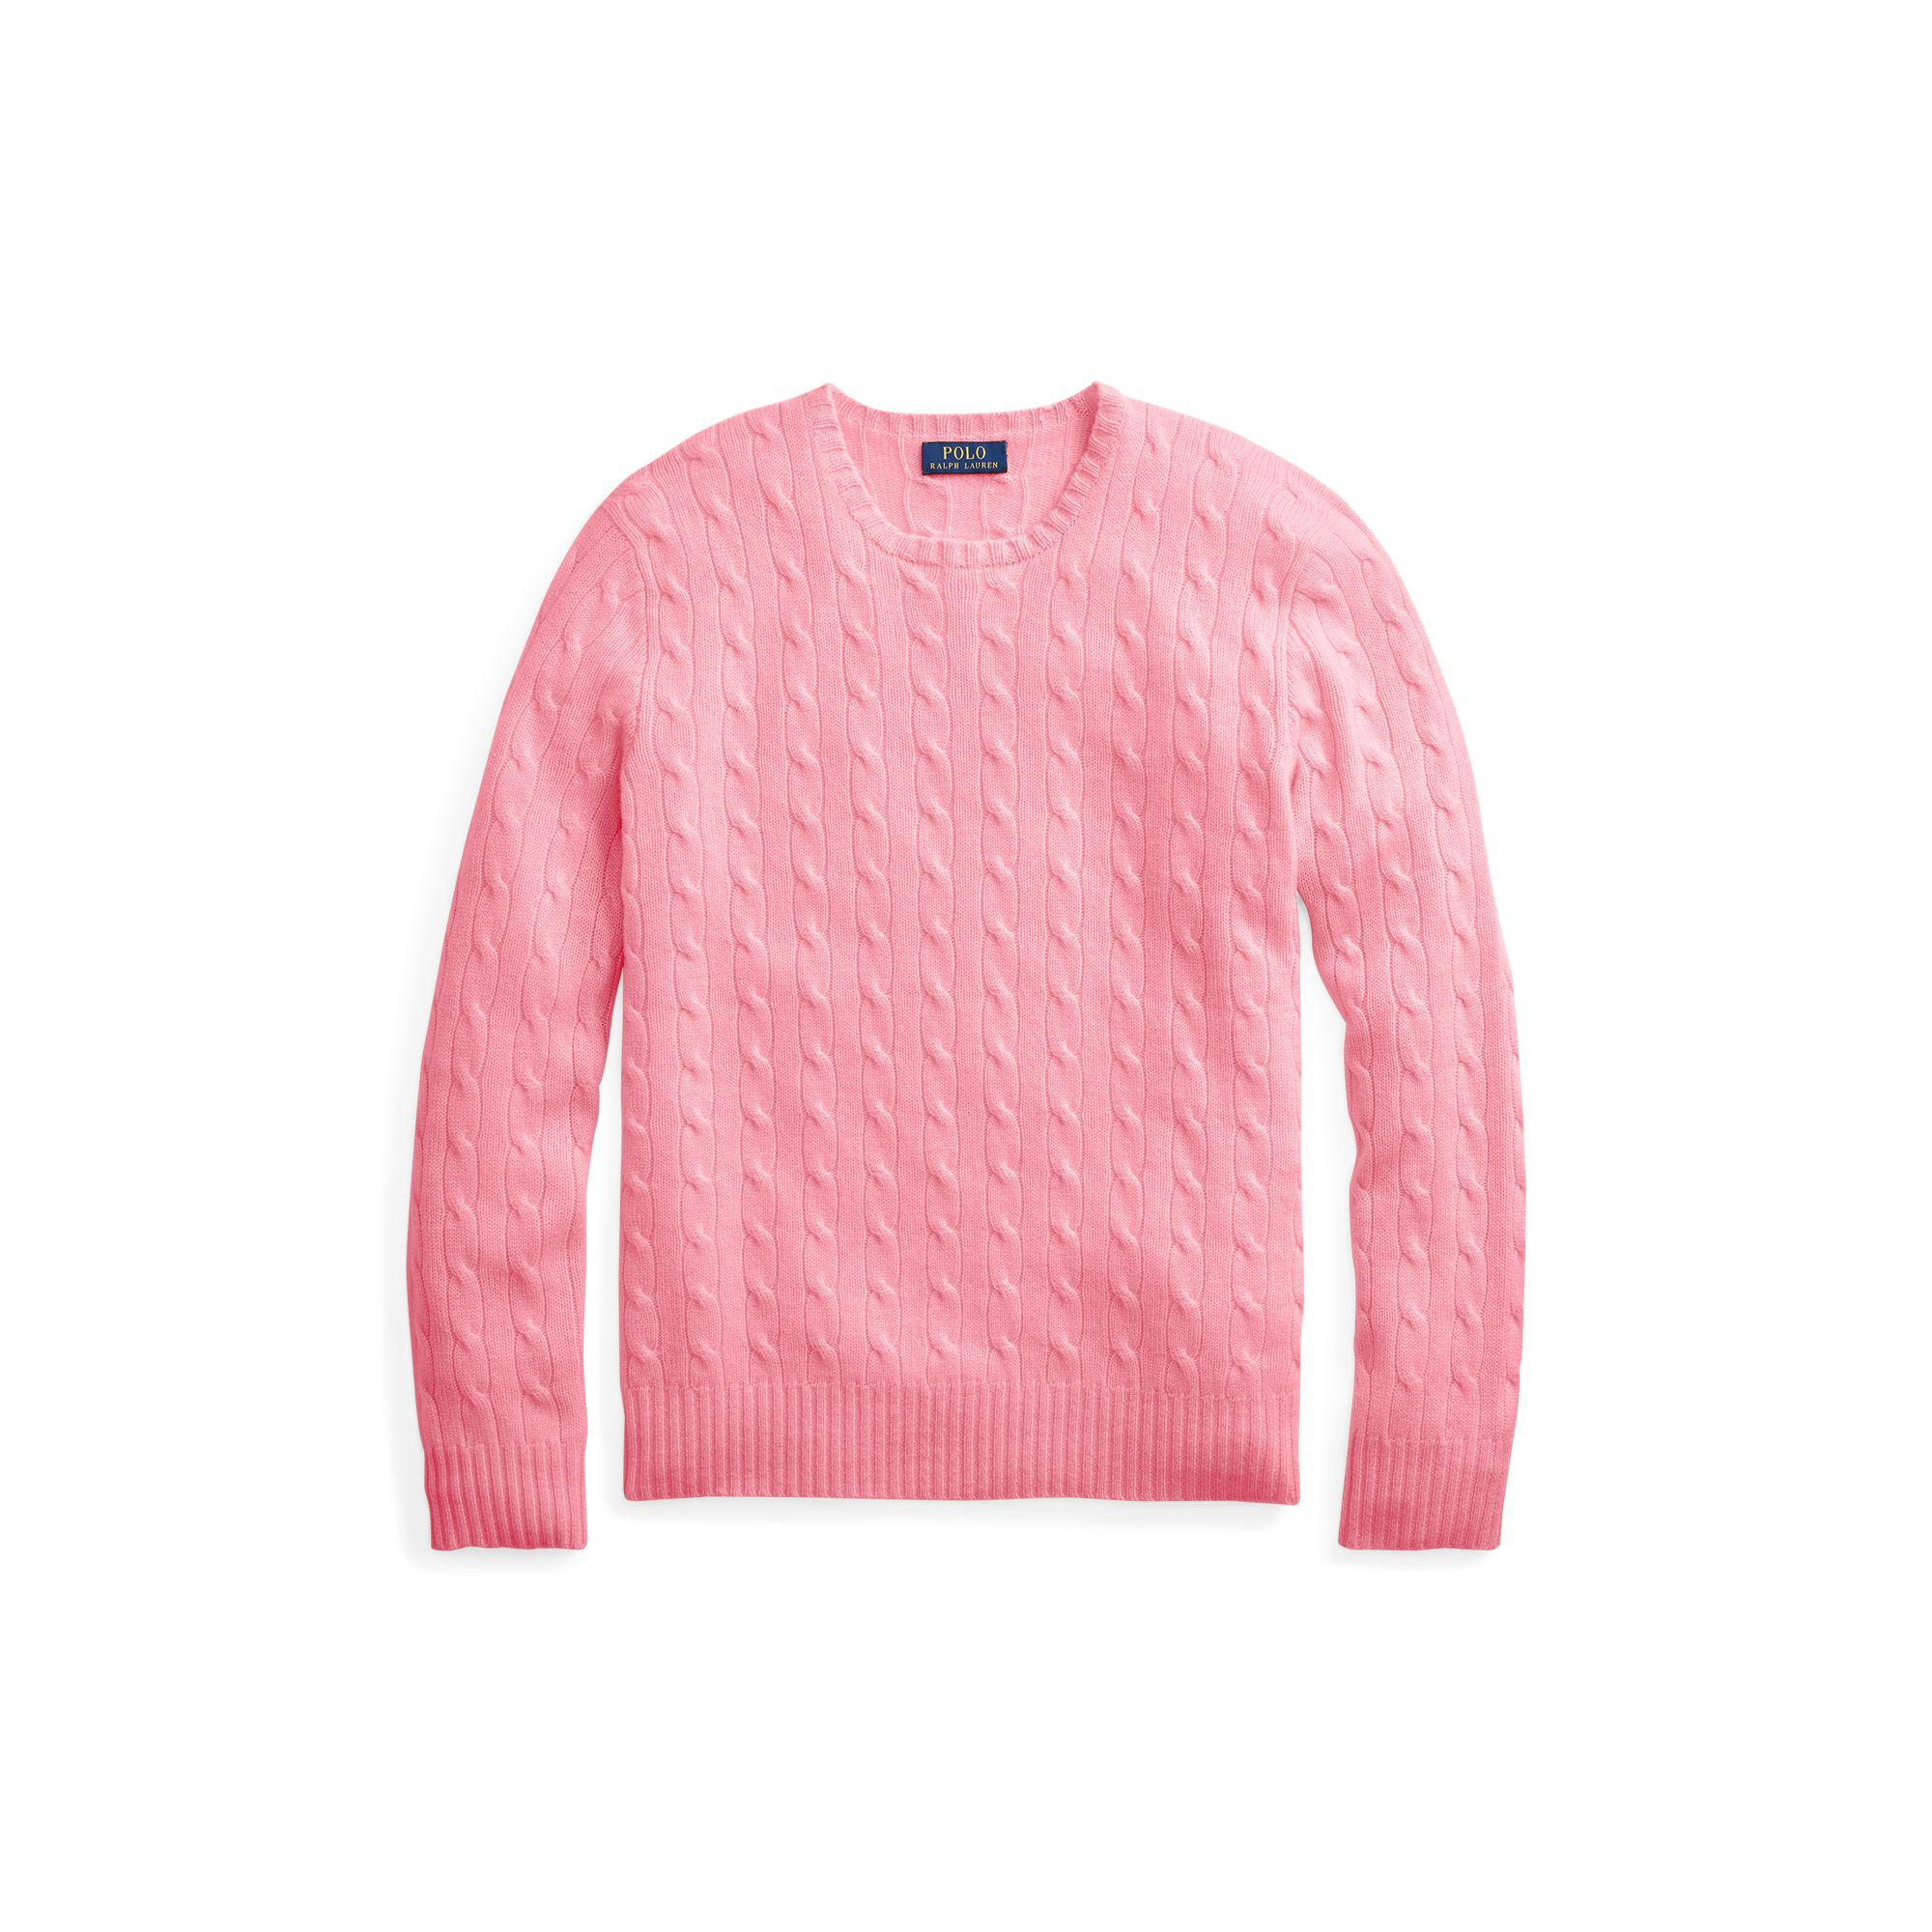 84cf5bfd5329 Polo Ralph Lauren - Pink Cable-knitted Cashmere Jumper for Men - Lyst. View  fullscreen